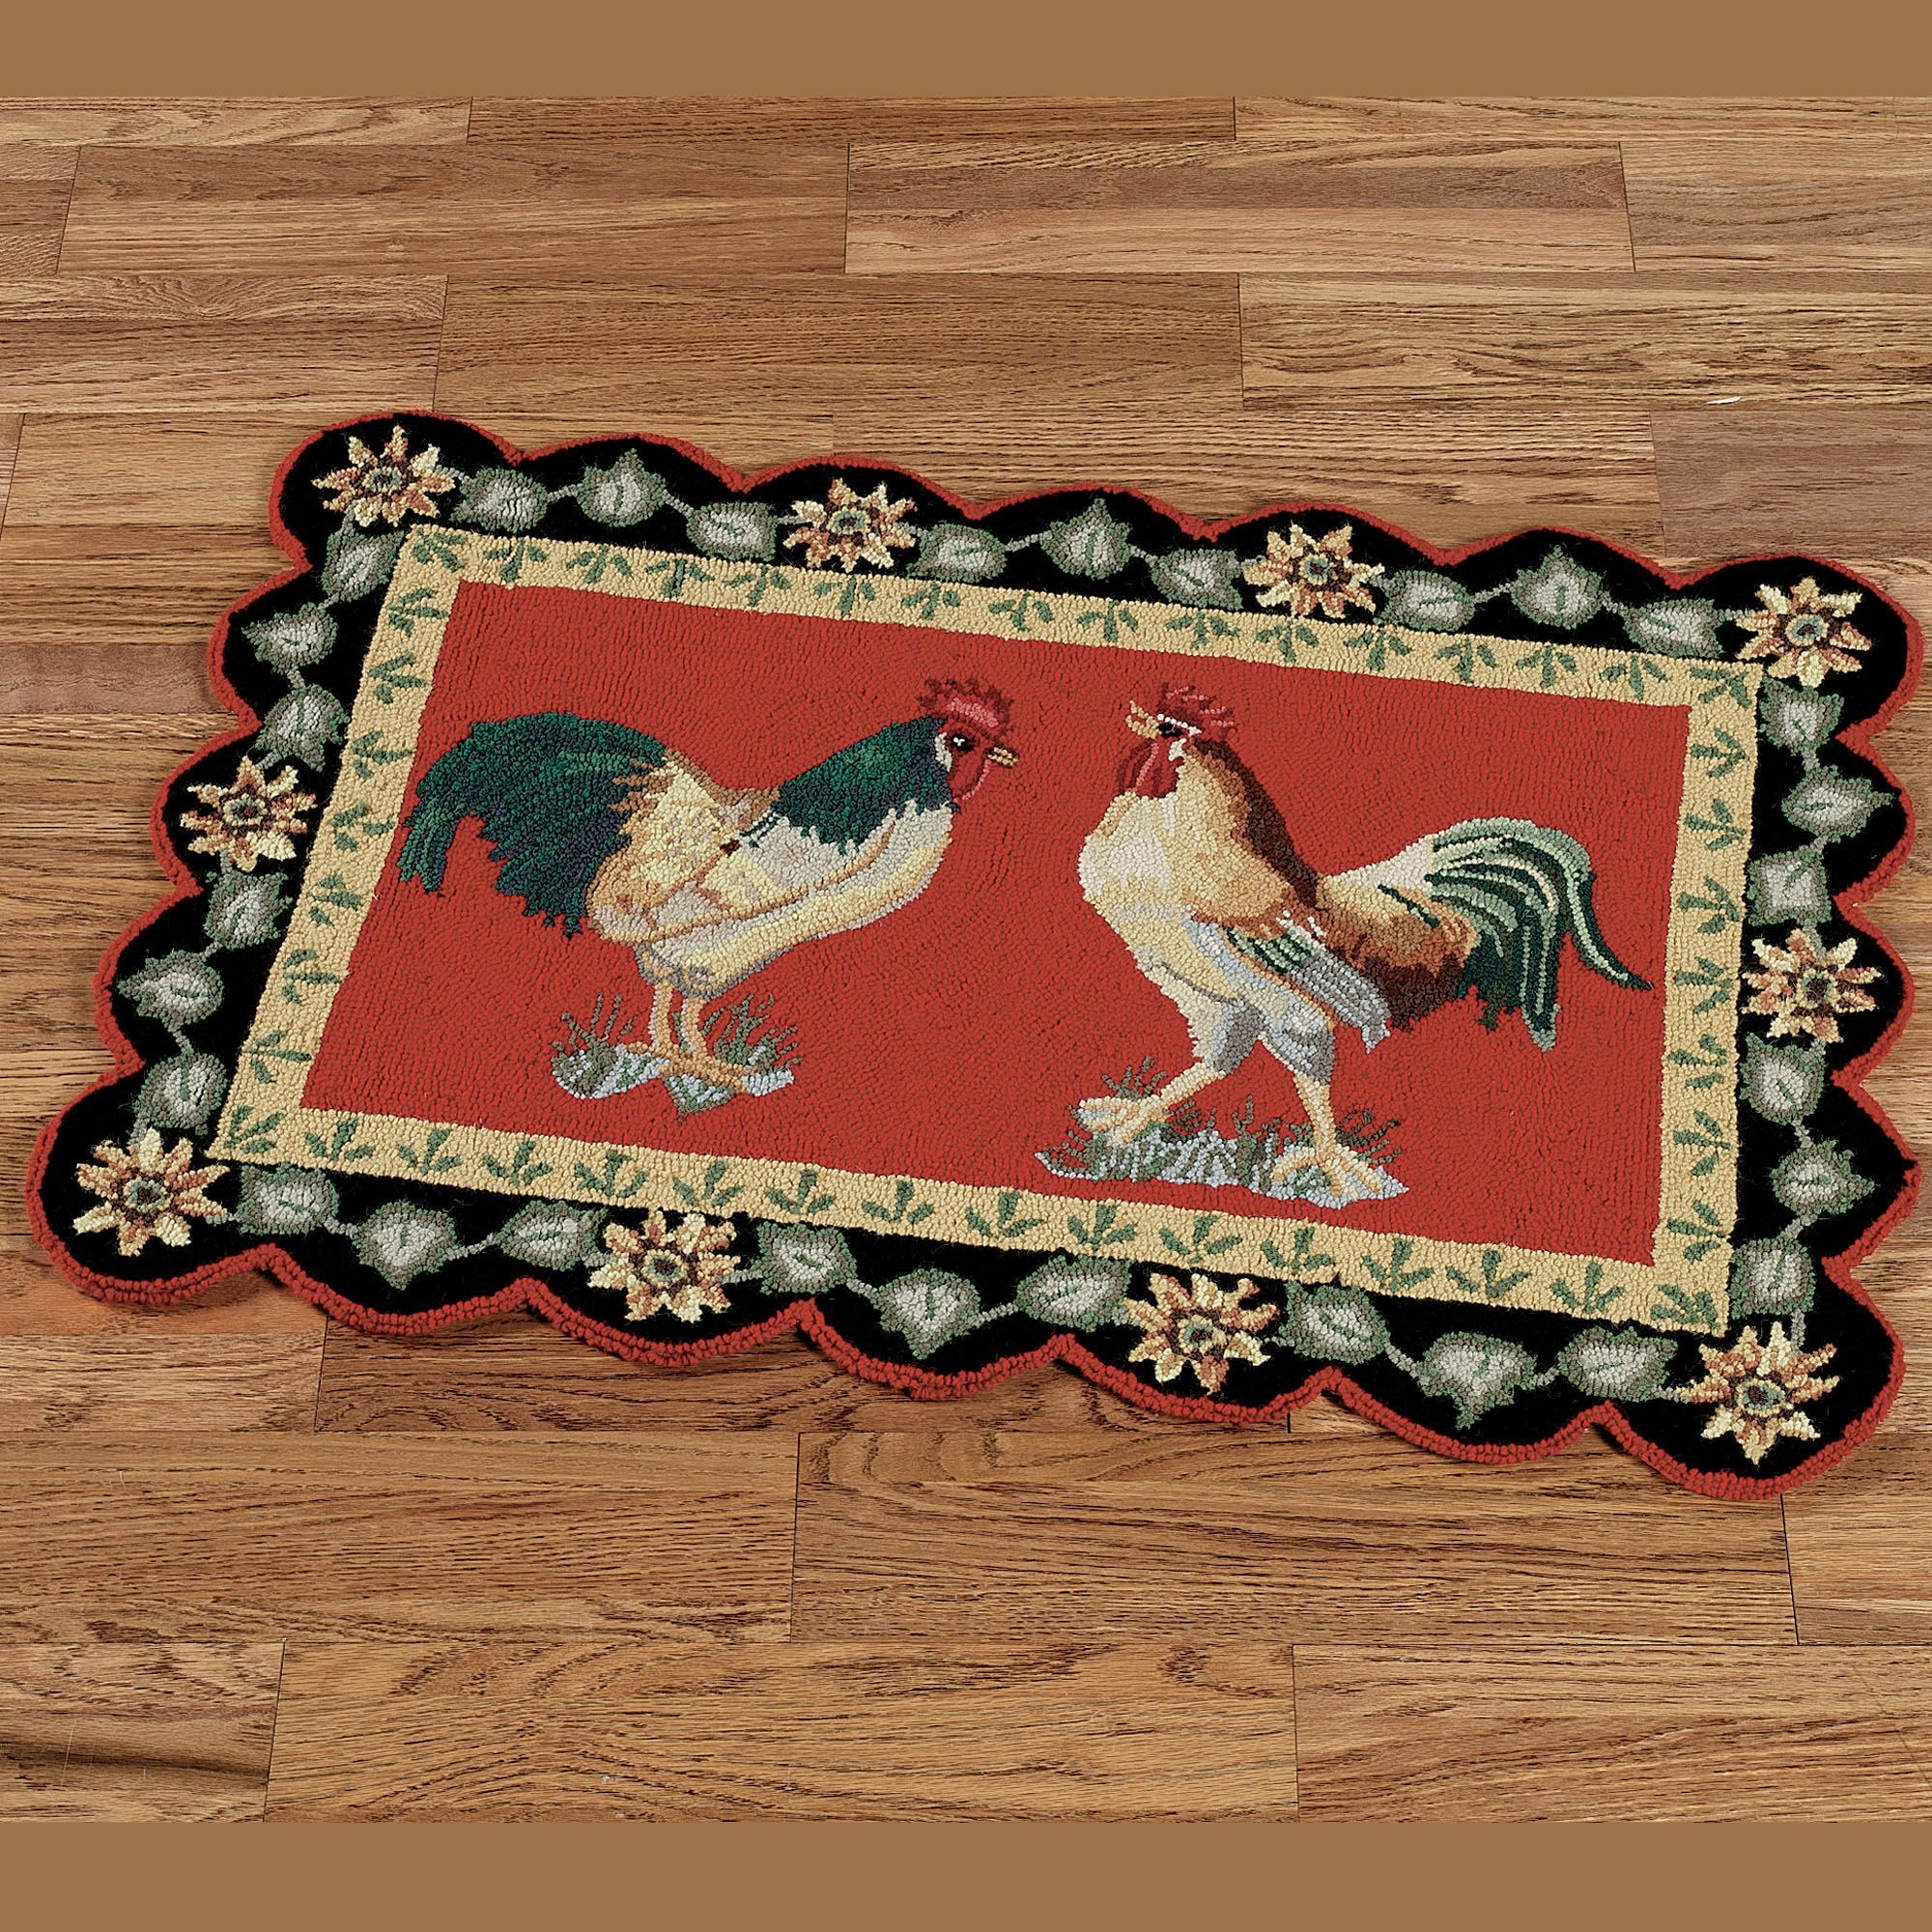 barnyard rooster rugs kitchens rh pinterest com Rooster Throw Rugs Rooster Rugs Walmart